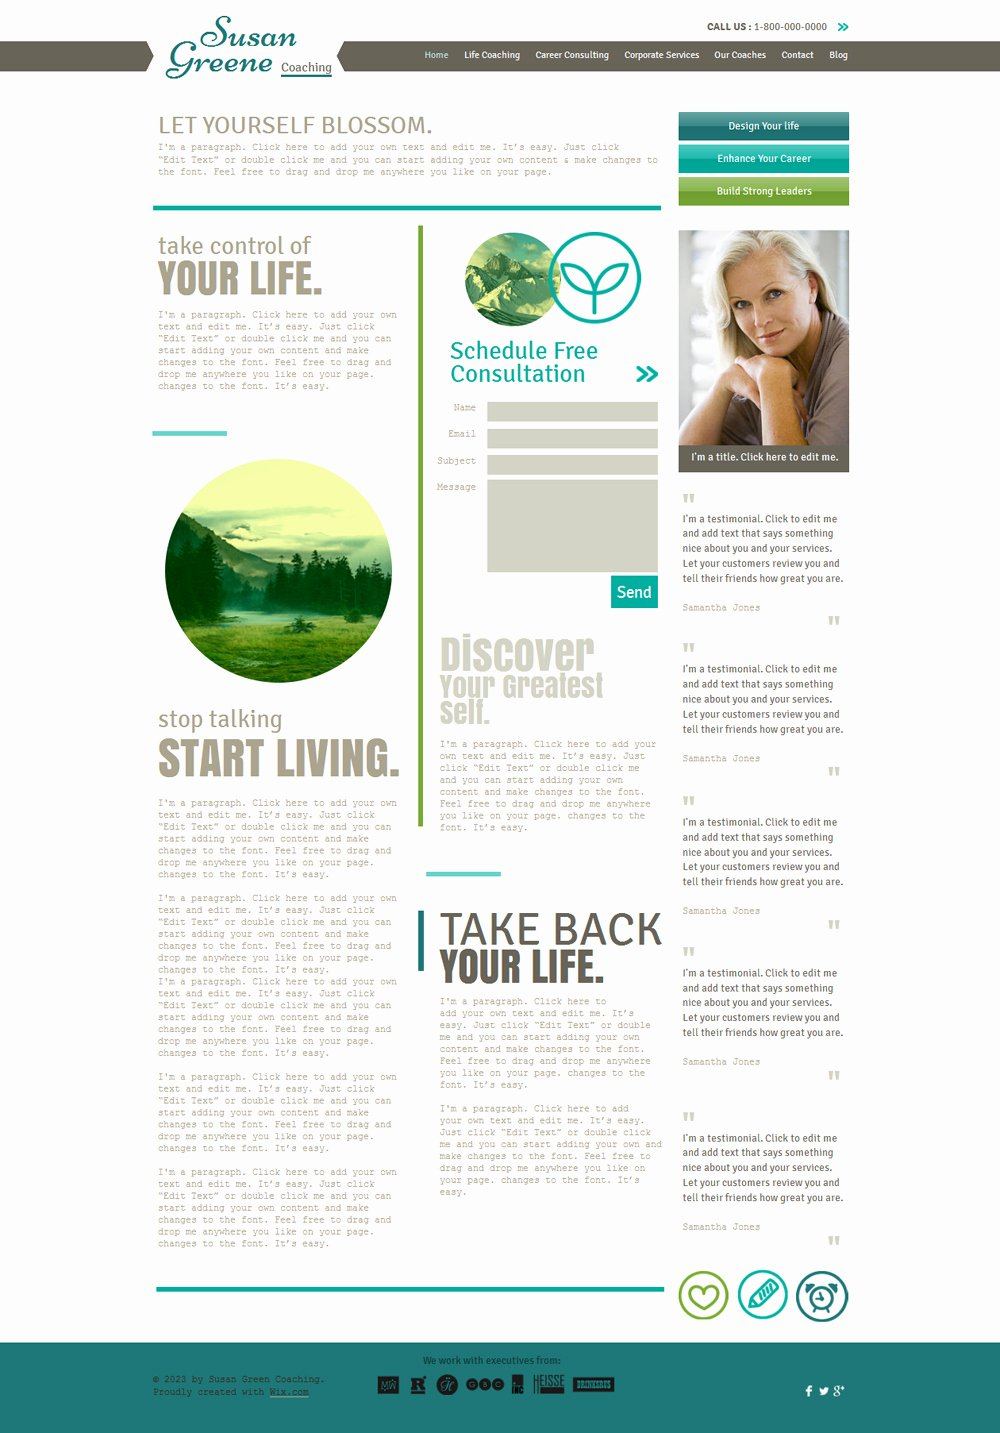 Life Coach Website Template Best Of 15 Best Consulting Coaching Website Templates and themes